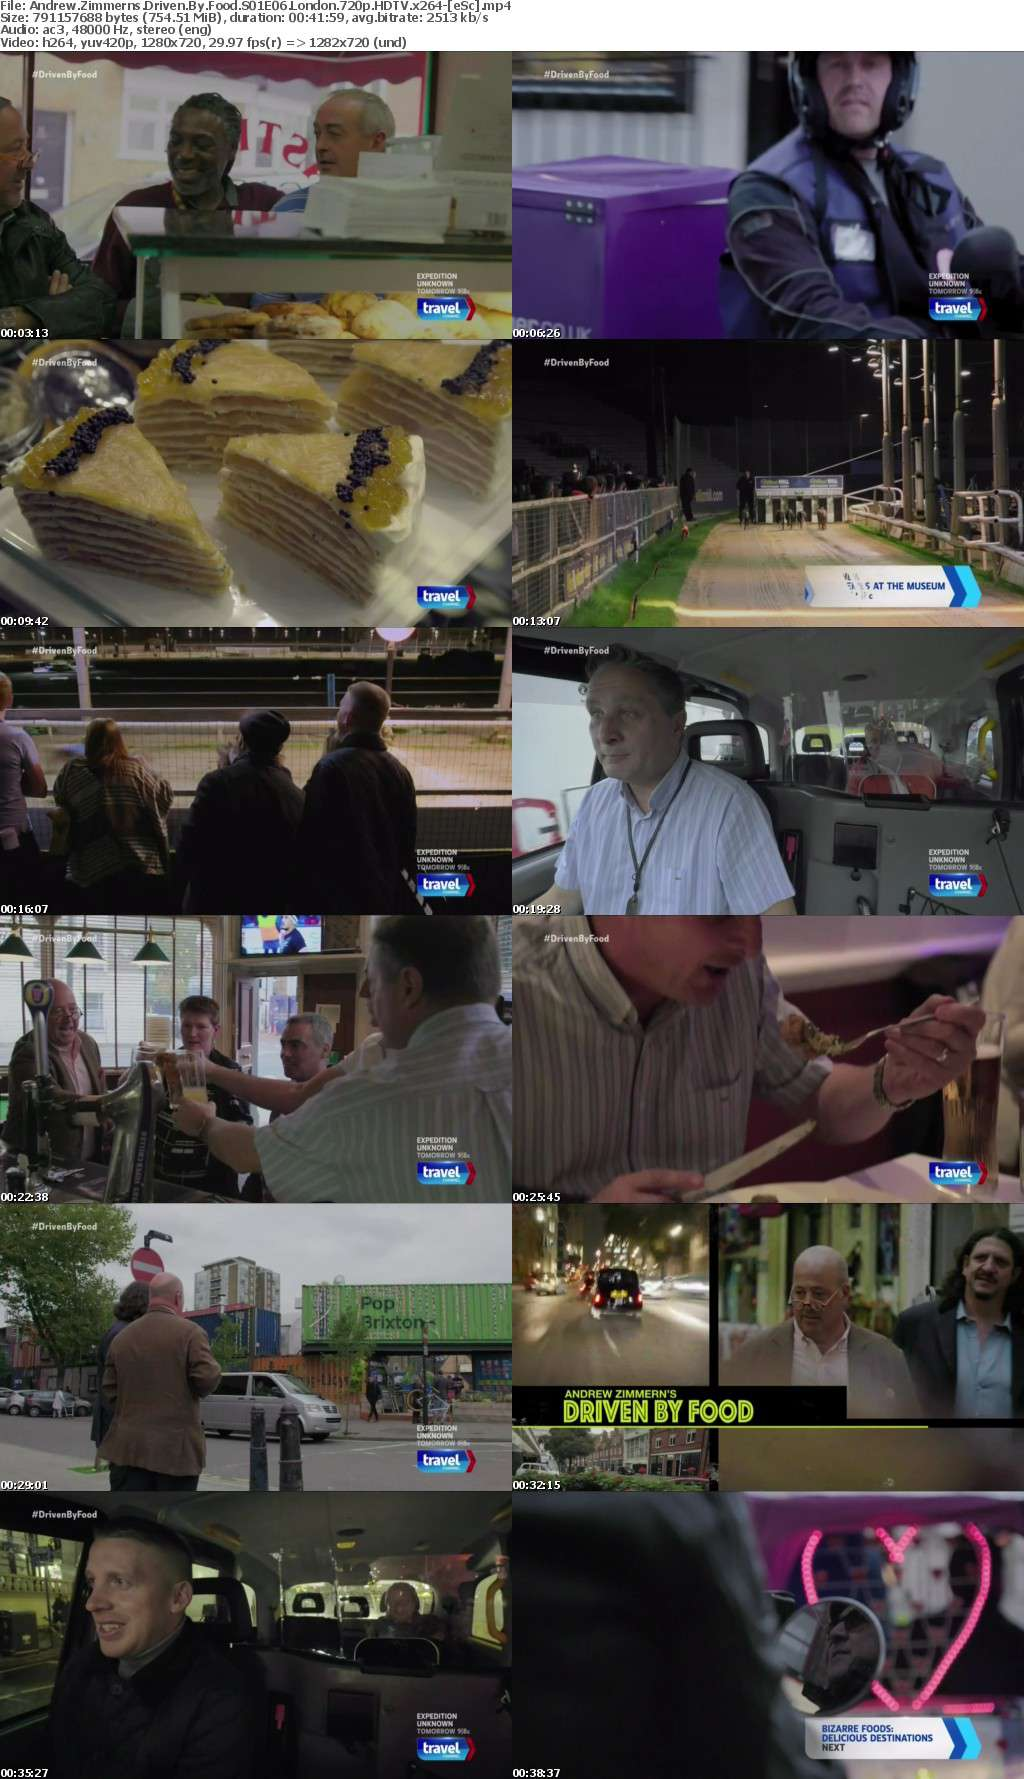 Andrew Zimmerns Driven By Food S01E06 London 720p HDTV x264-[eSc]